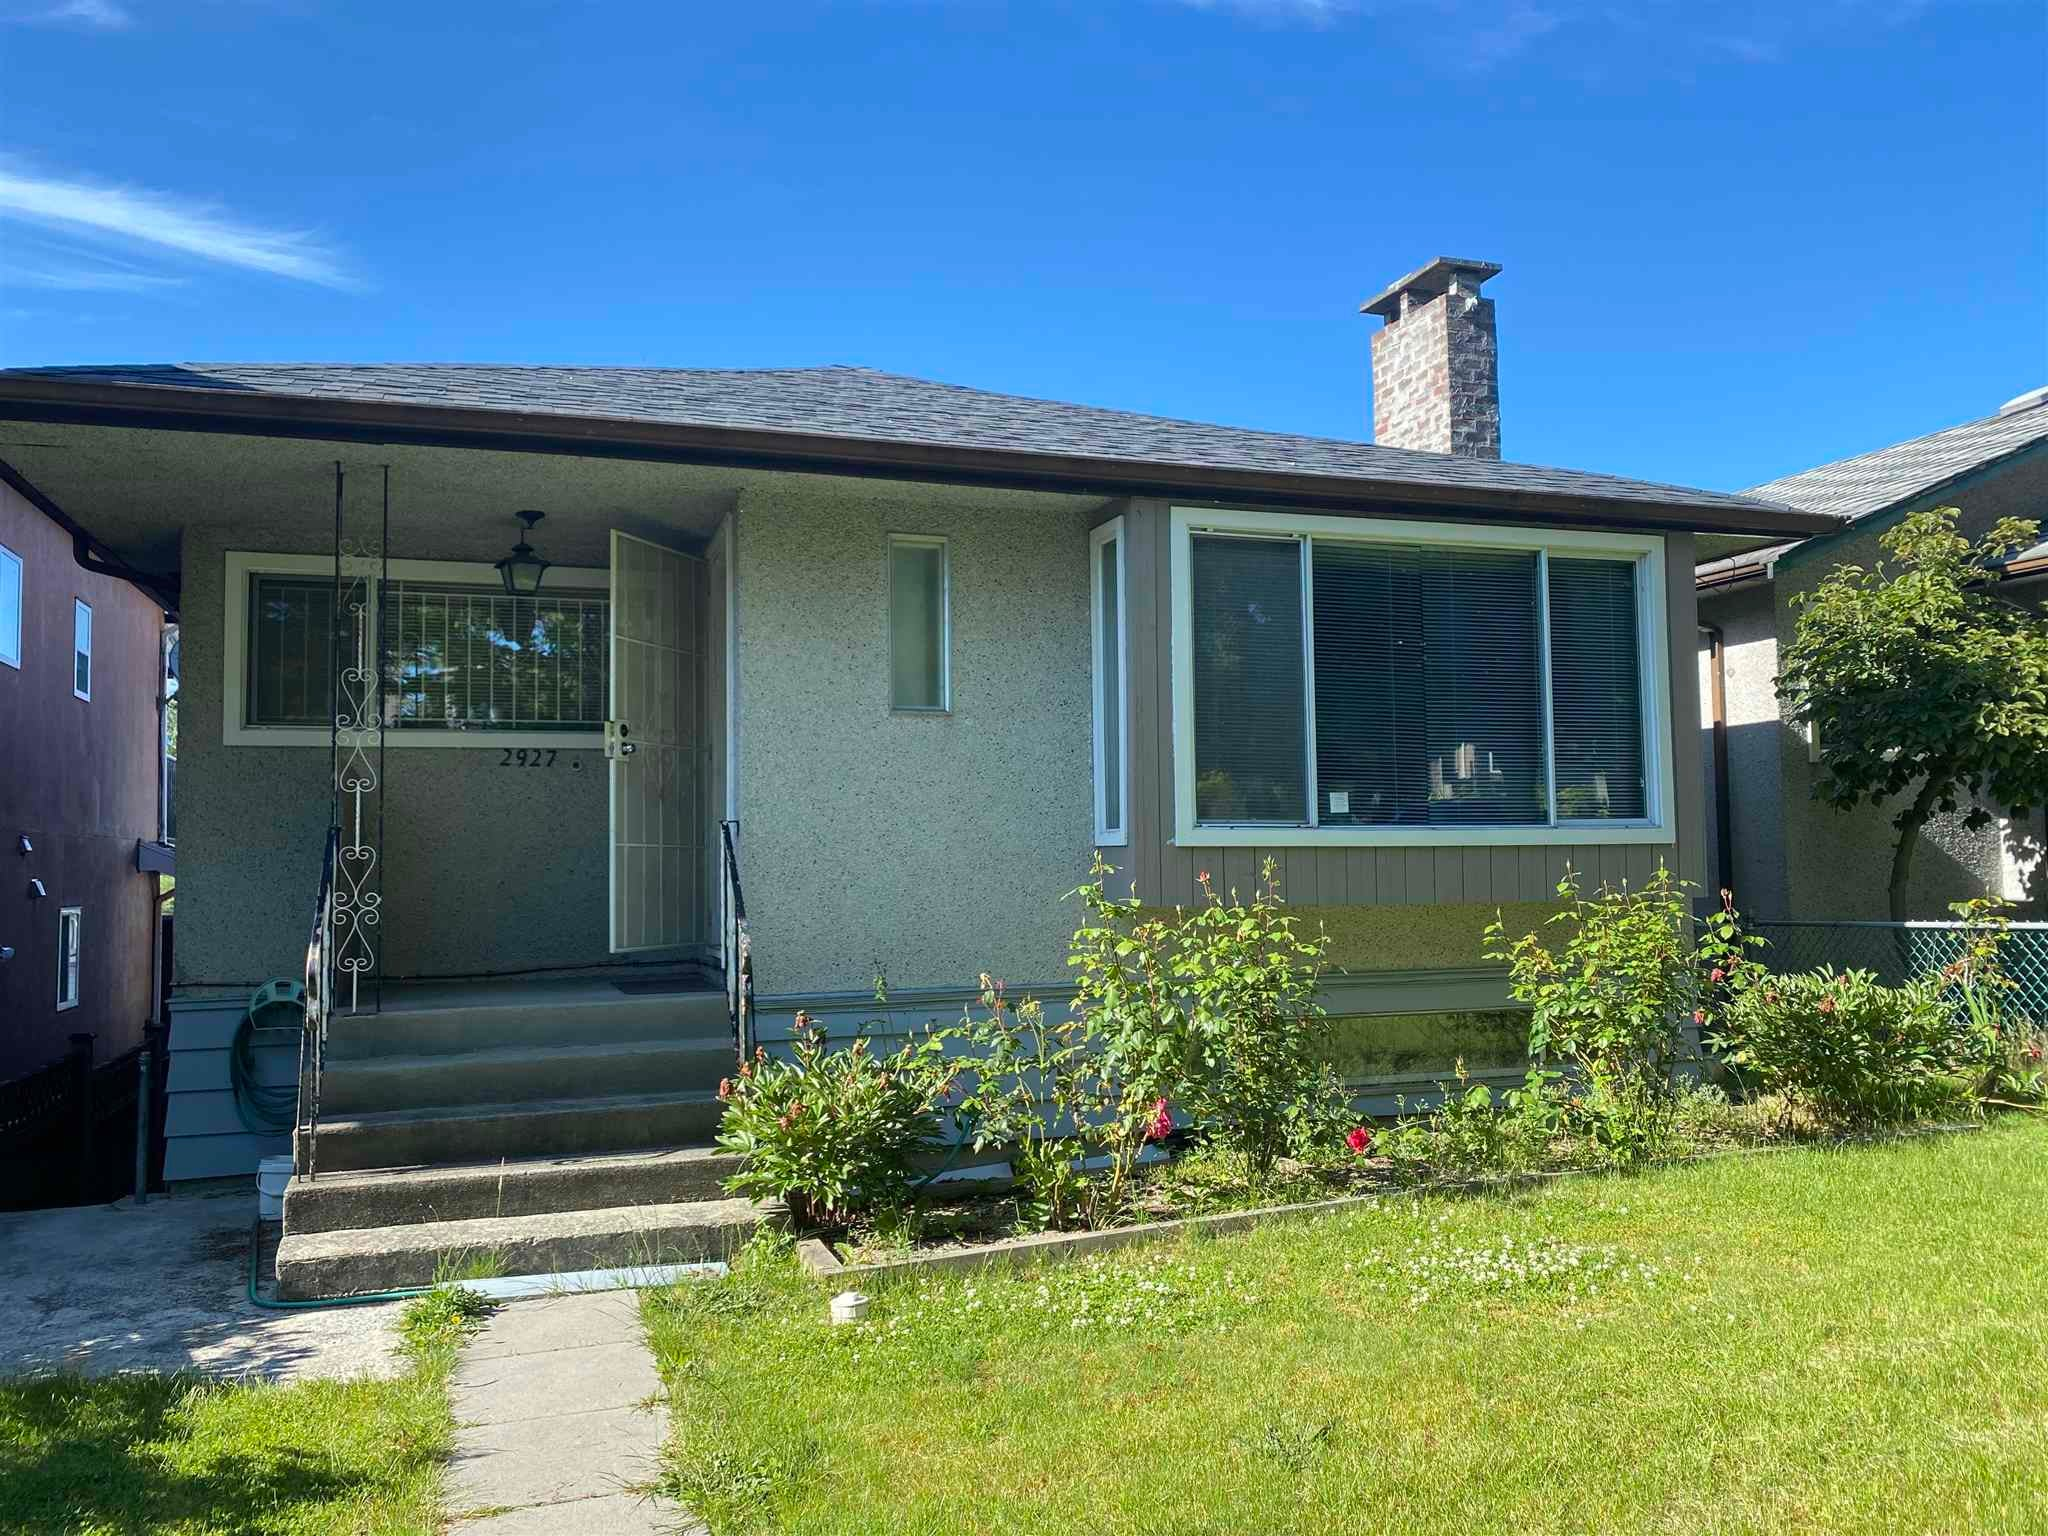 2927 E 16TH AVENUE - Renfrew Heights House/Single Family for sale, 6 Bedrooms (R2595053) - #1